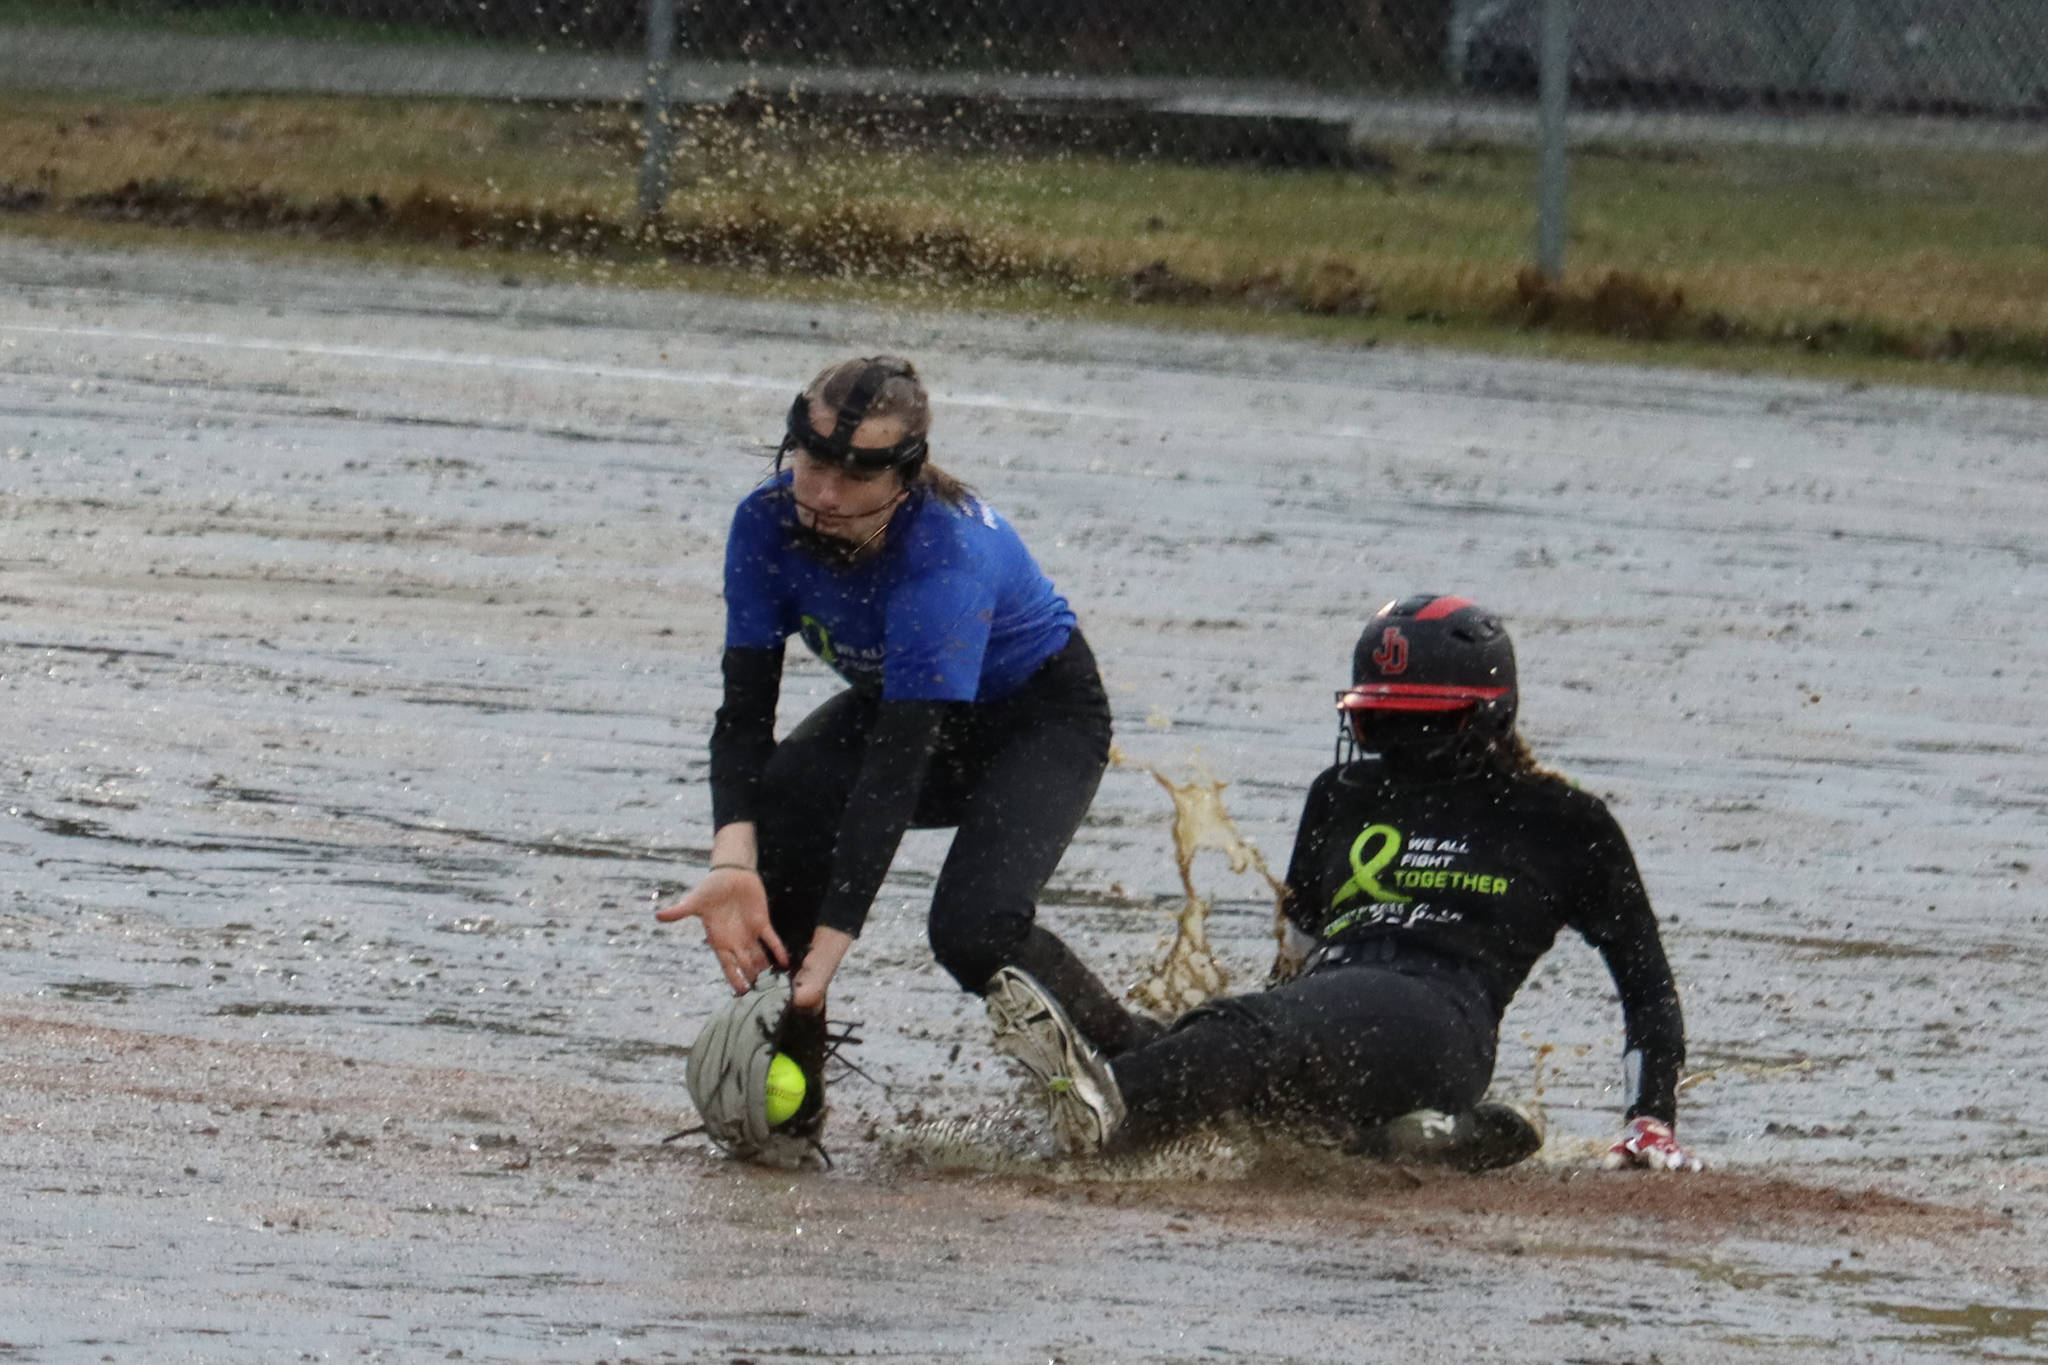 JDHS' Gloria Bixby slides safe into second base and under the tag of TMHS' Jenna Dobson during the first inning of a drizzly Friday night game against Thunder Mountain High School. JDHS leaped out to a 7-0 lead in the first inning and wound up winning 15-0. (Ben Hohenstatt / Juneau Empire)